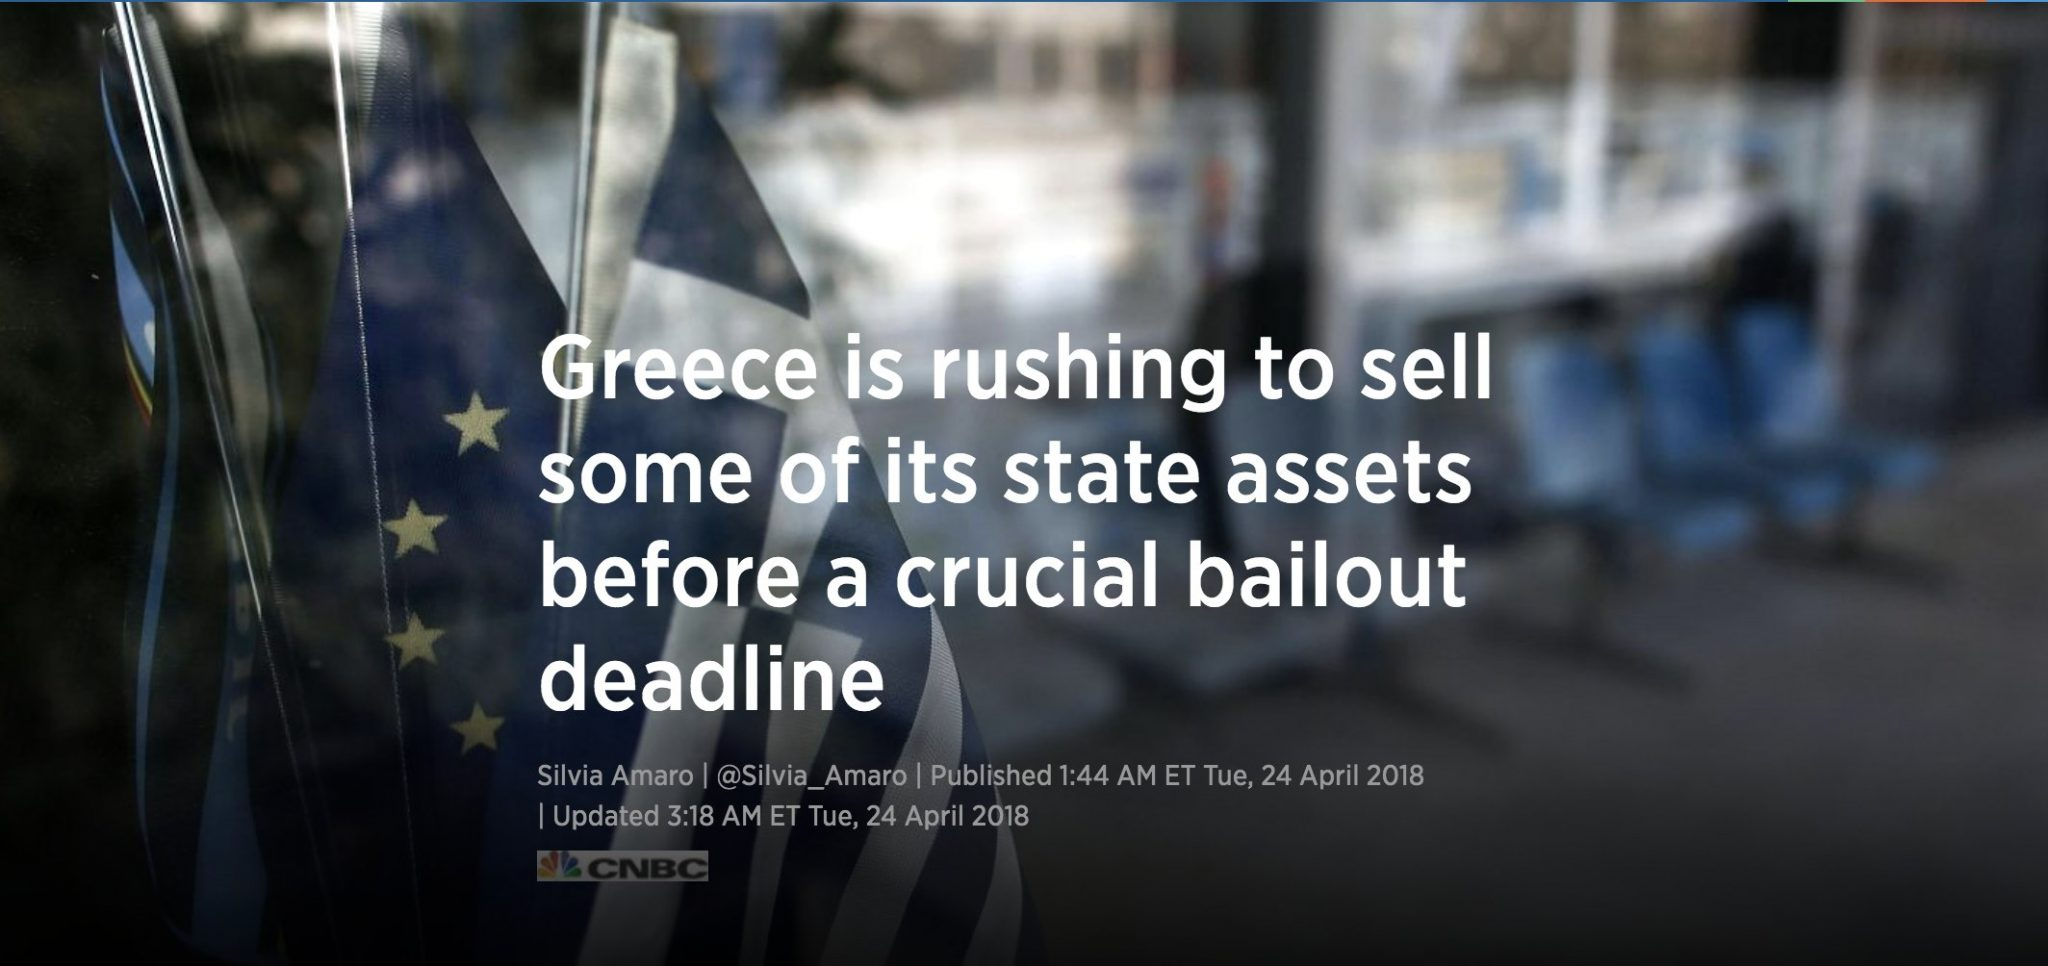 Greece is rushing to sell some of its state assets before a crucial bailout deadline